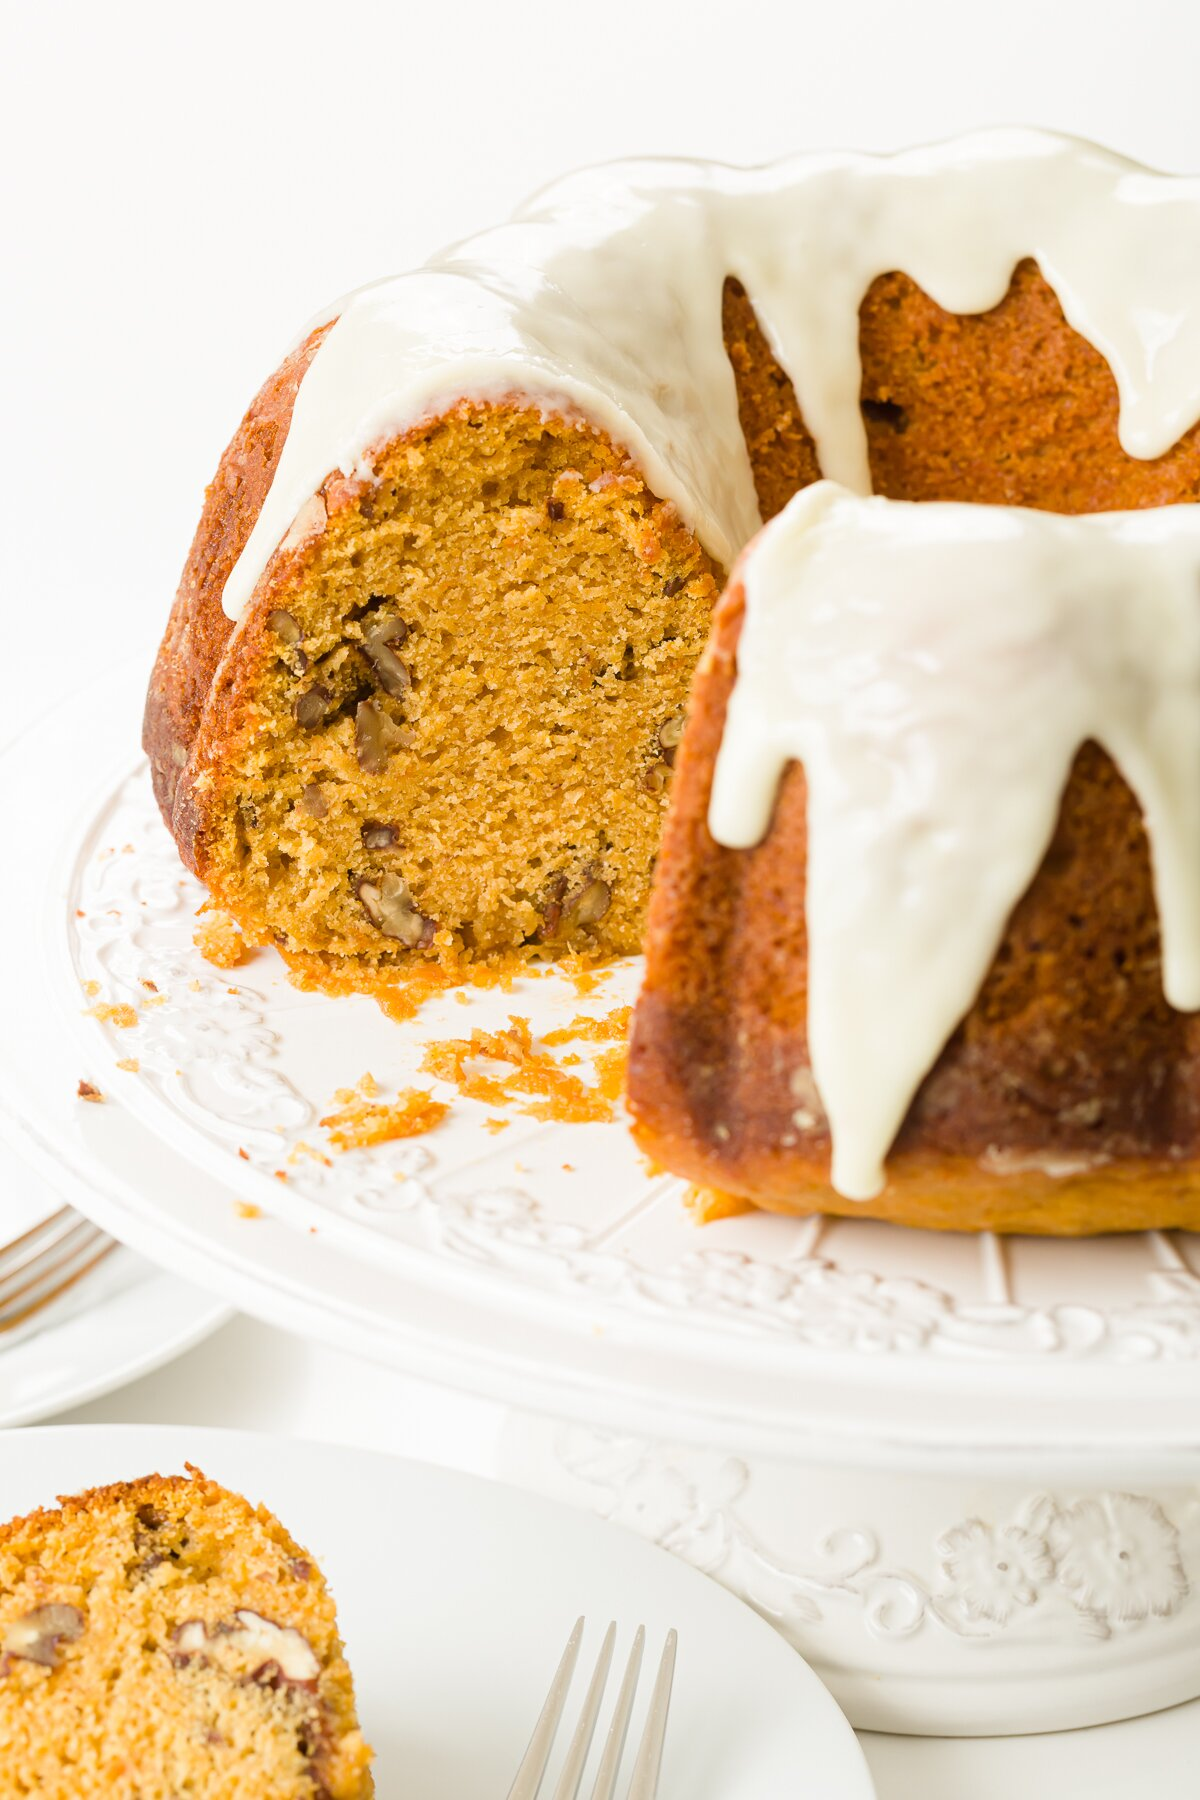 Sweet potato Bundt cake on cake stand with a slice on a plate in front of it